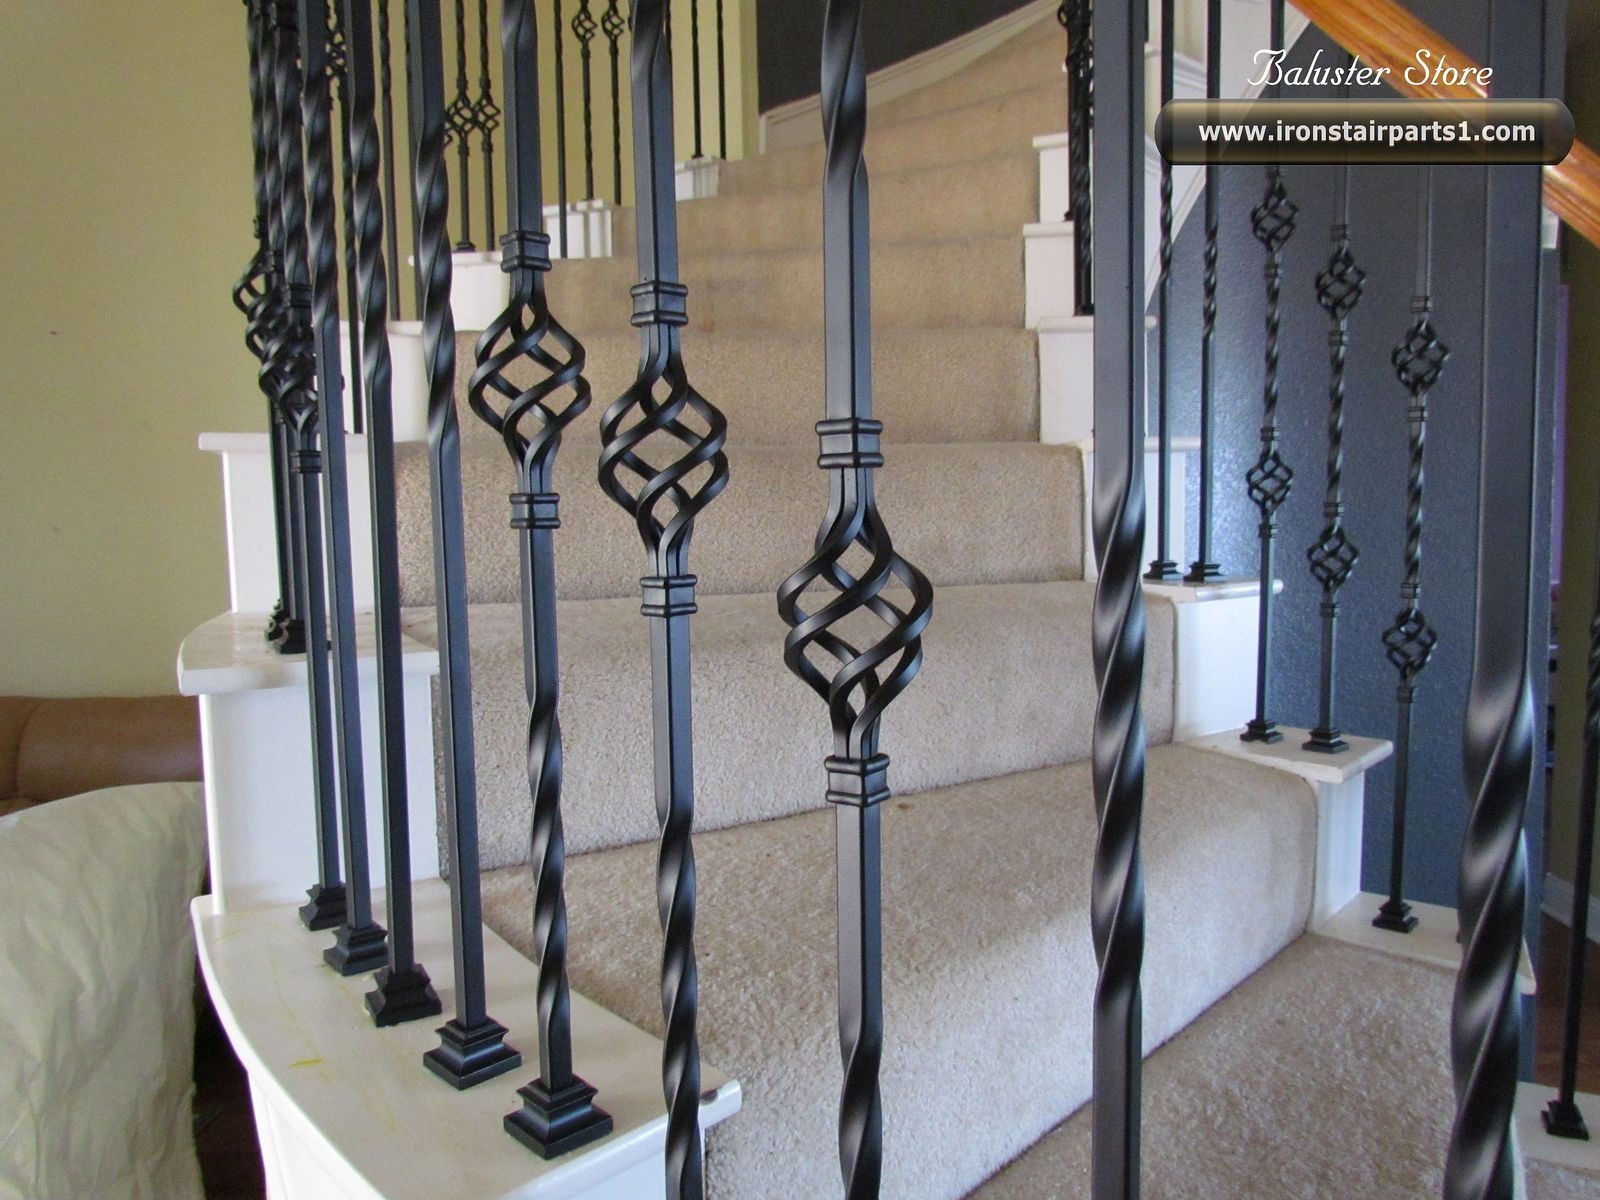 decorations accessories ornate iron stair balusters in spiral stair